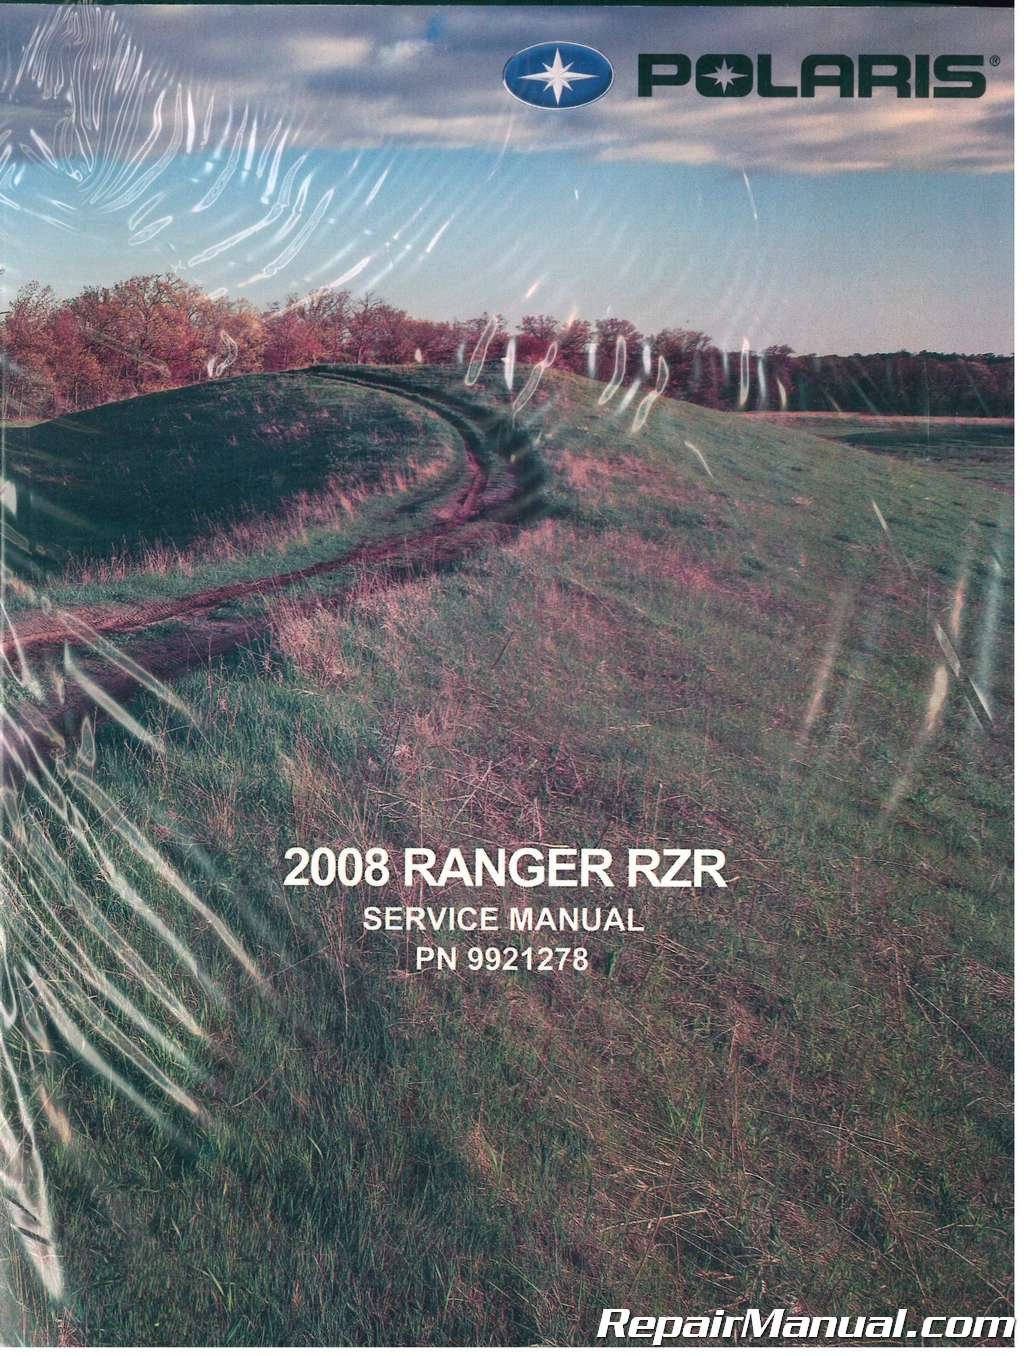 9921278 2008 polaris ranger rzr 800 side by side service manual rh amazon com 2008 polaris rzr 800 service manual 2008 polaris rzr owners manual pdf